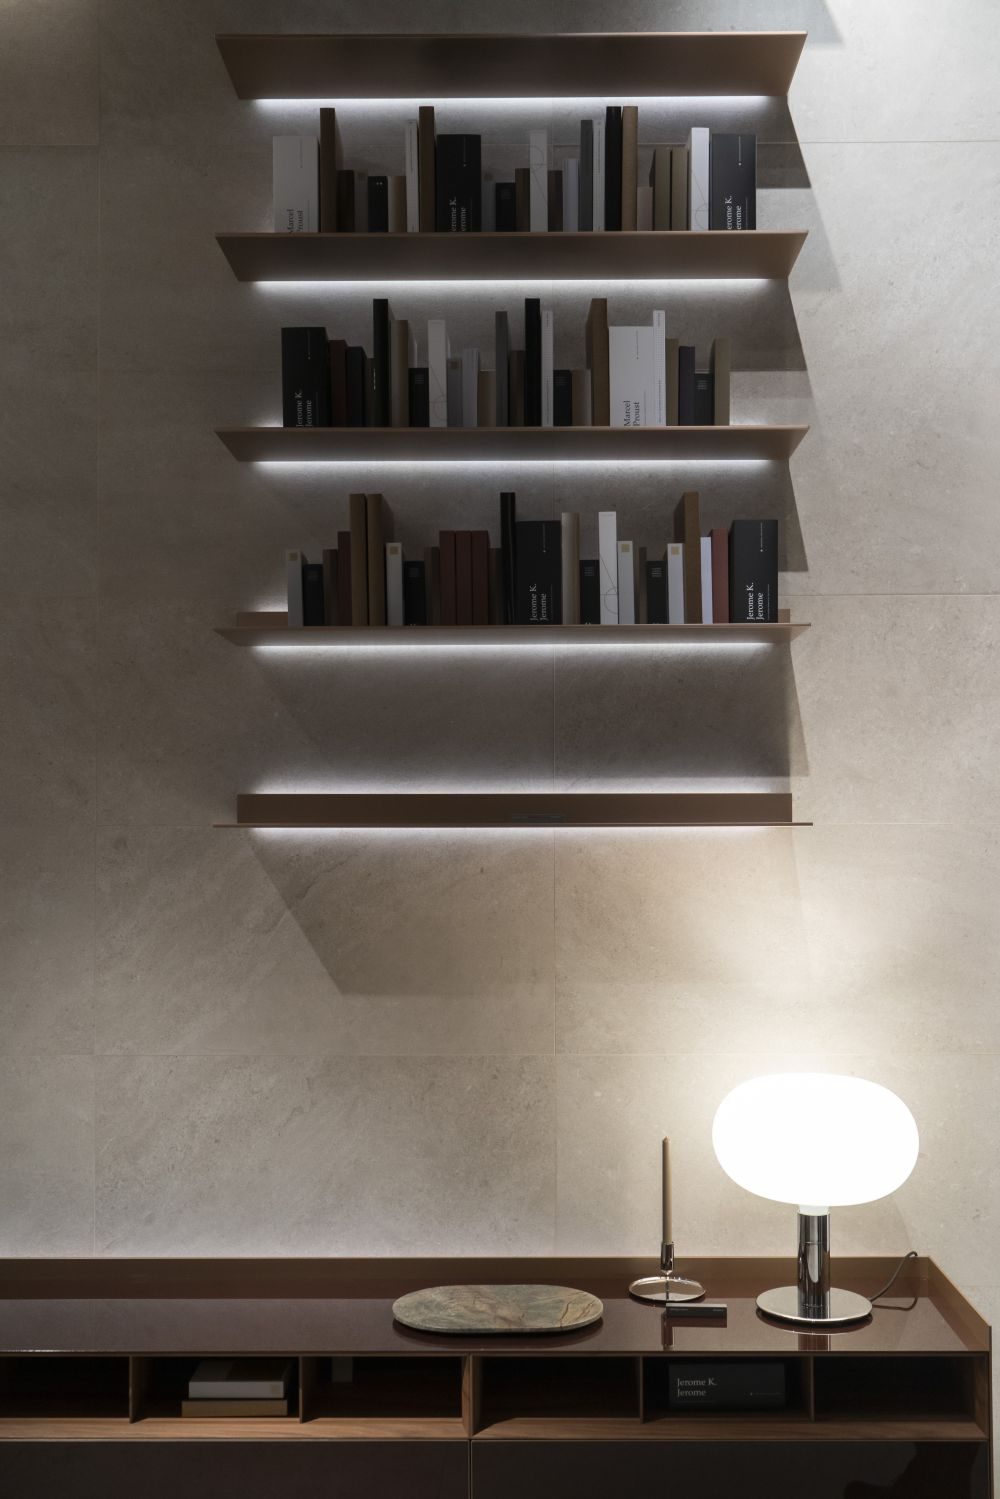 1571084529 443 charming ways to integrate bookshelves into any space - Charming Ways To Integrate Bookshelves Into any Space